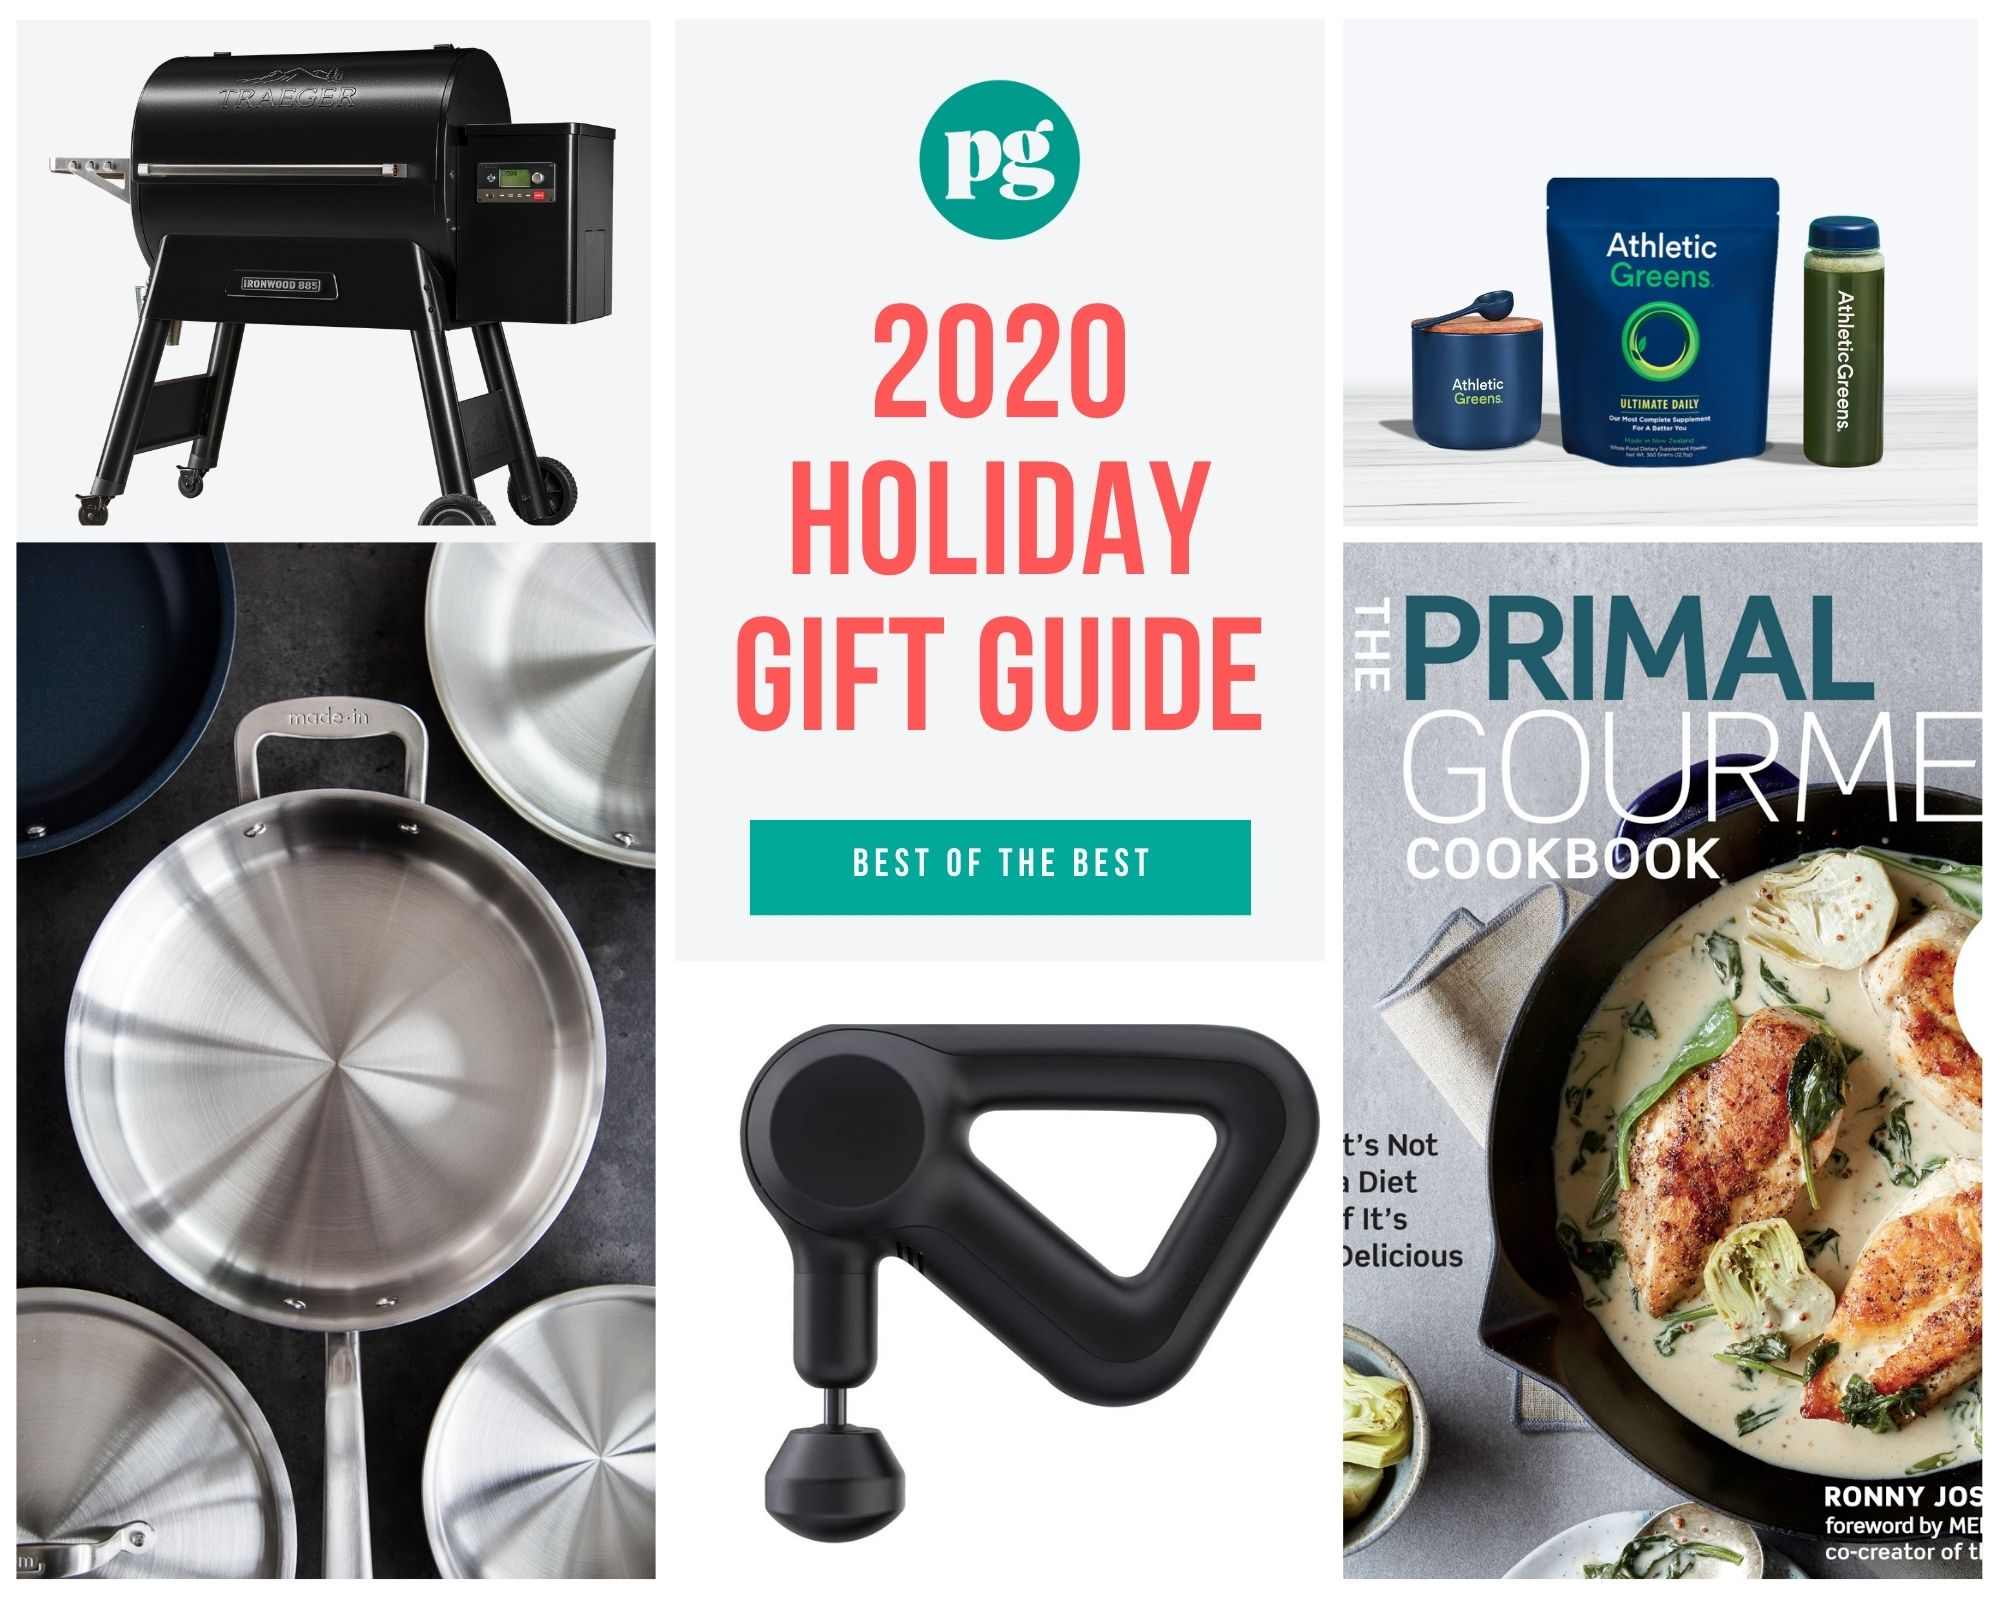 2020 Holiday Gift Guide for Food Lovers Primal Gourmet